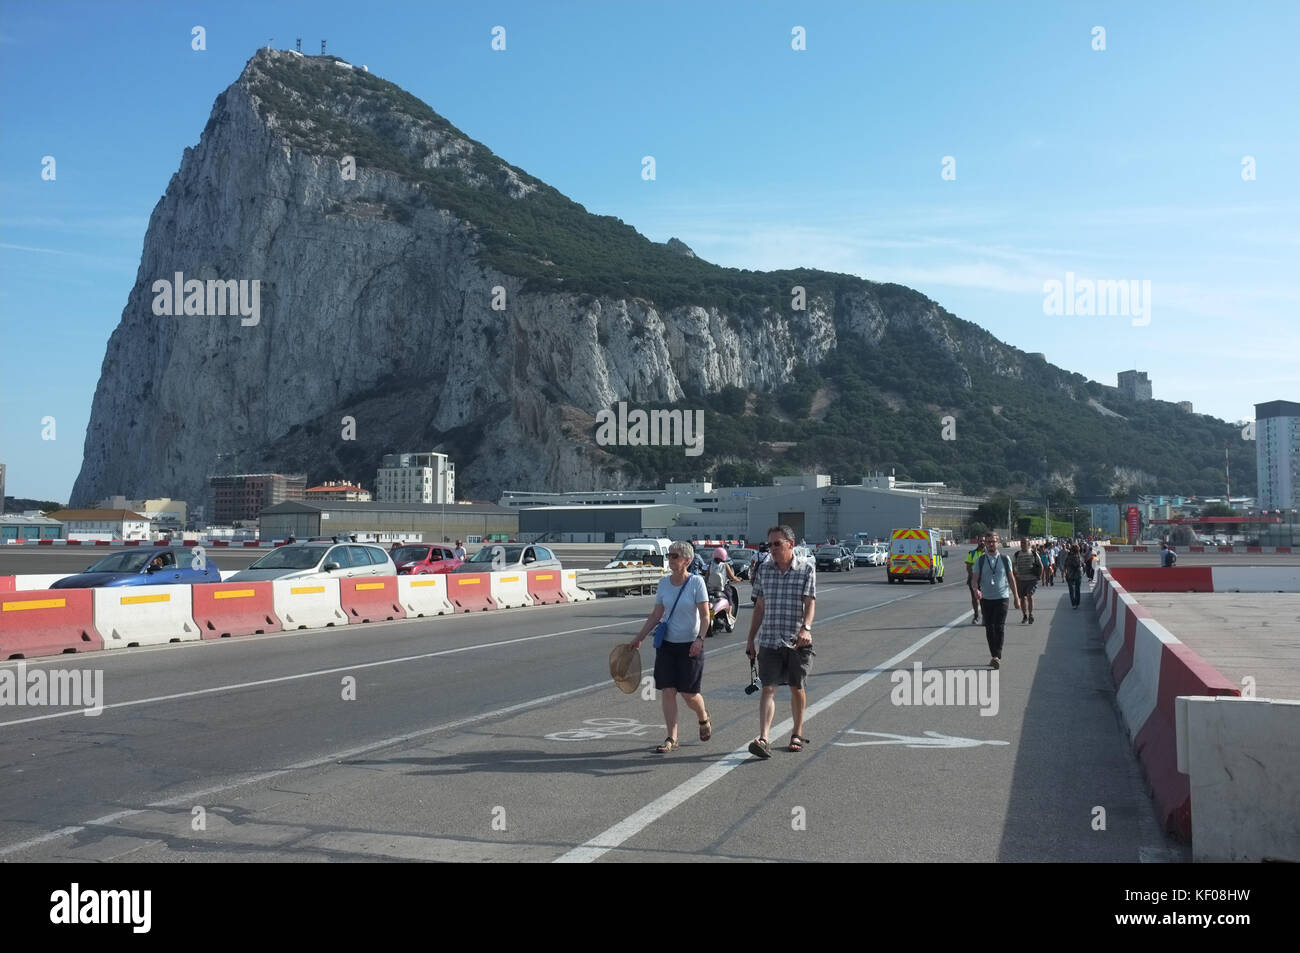 Winston Churchill Avenue, which crosses the airport runway, Gibraltar, September 2017 - Stock Image